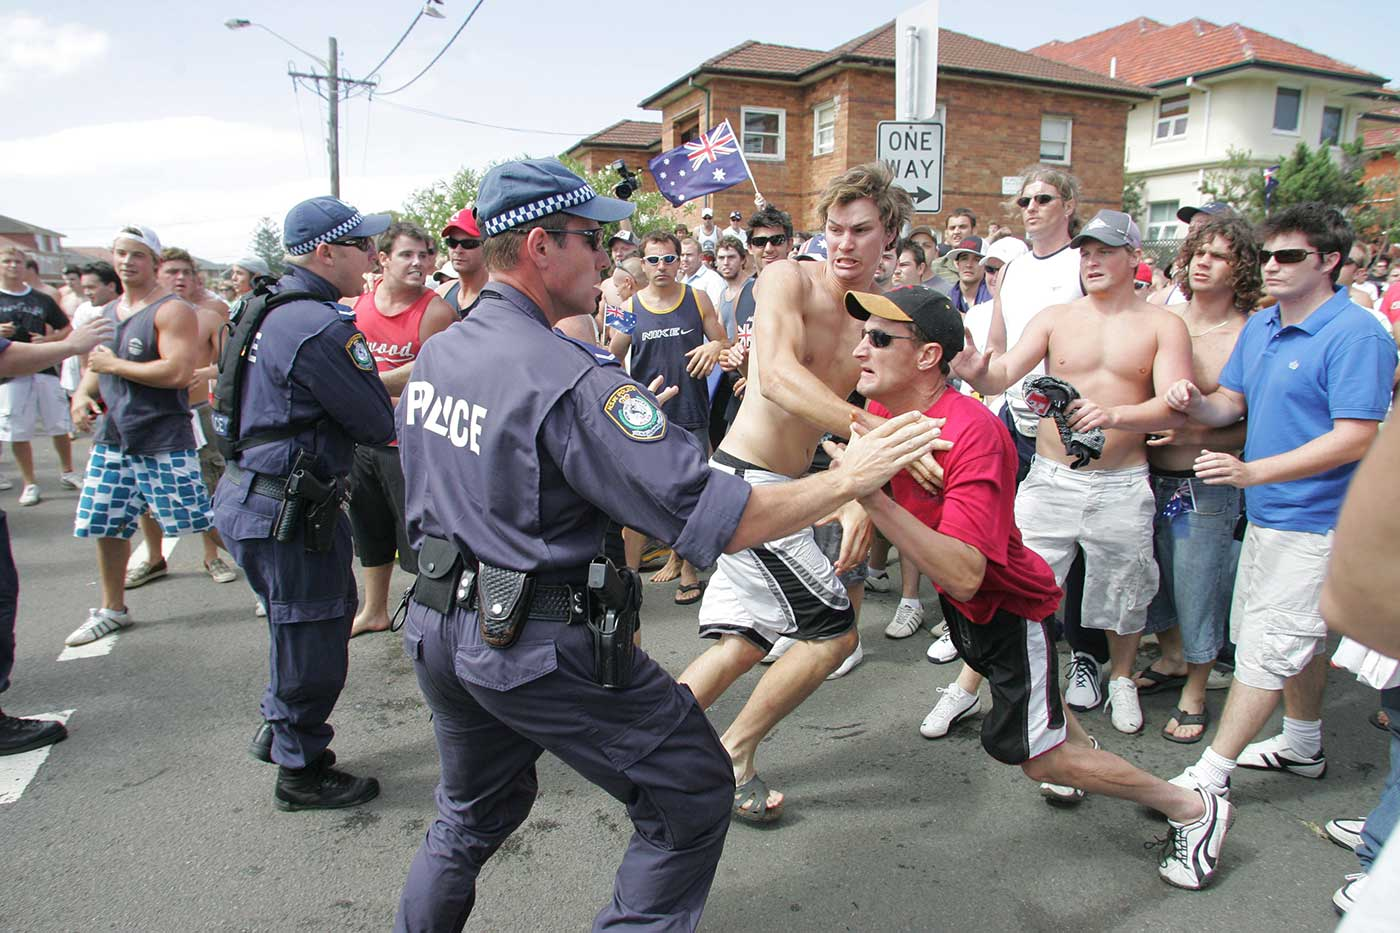 Colour photograph of police trying to hold back a large crowd of angry predominantly young white male protesters on a street.